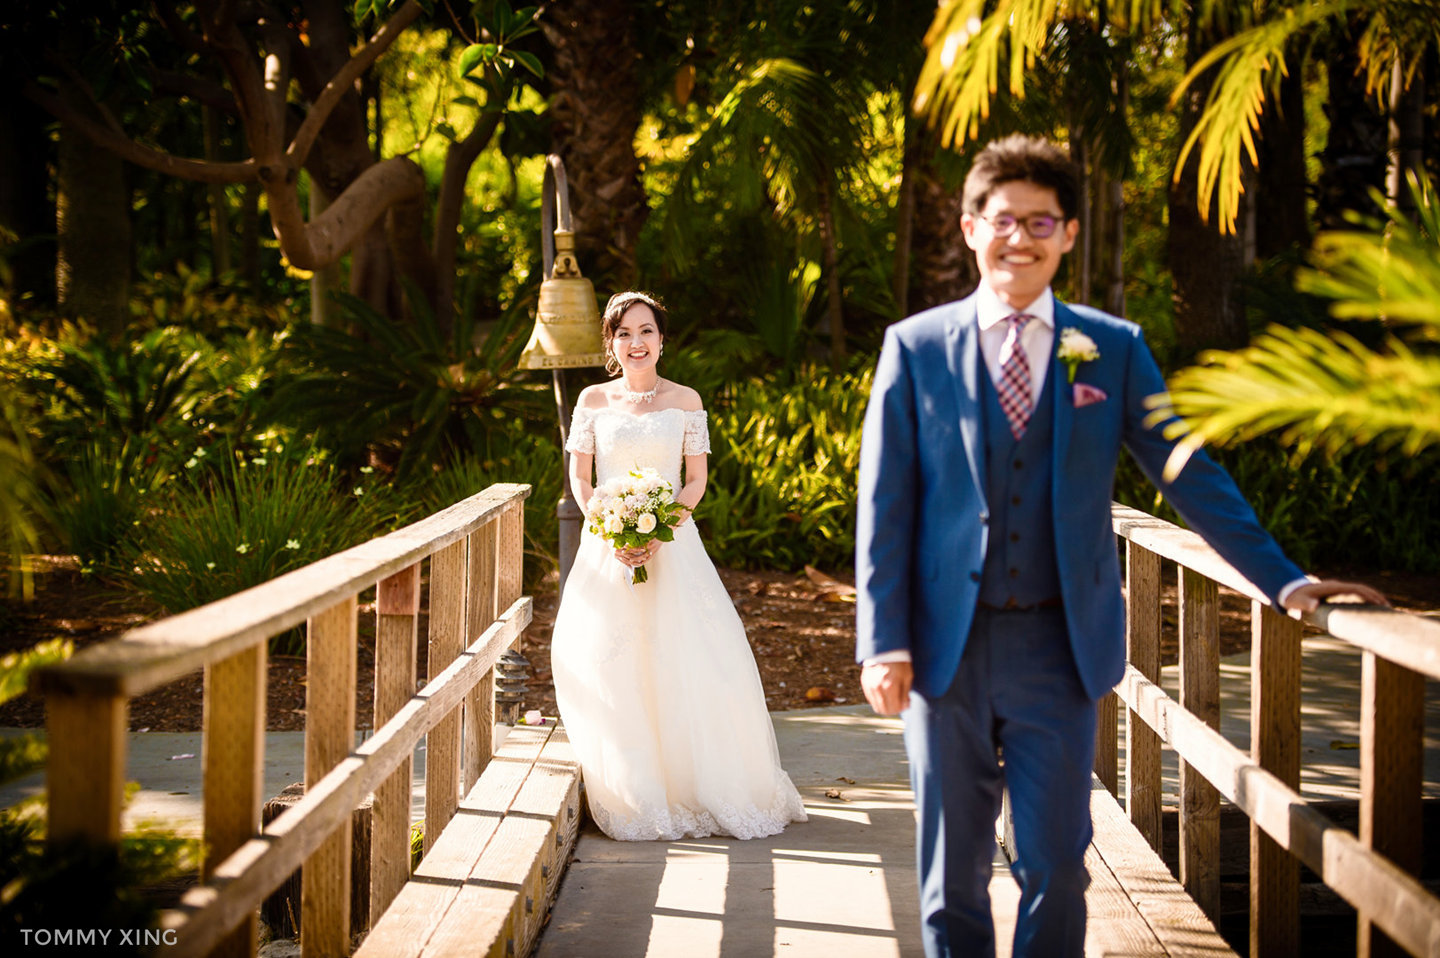 Paradise Point Resort Wedding Xiaolu & Bin San Diego 圣地亚哥婚礼摄影跟拍 Tommy Xing Photography 洛杉矶婚礼婚纱照摄影师 060.jpg